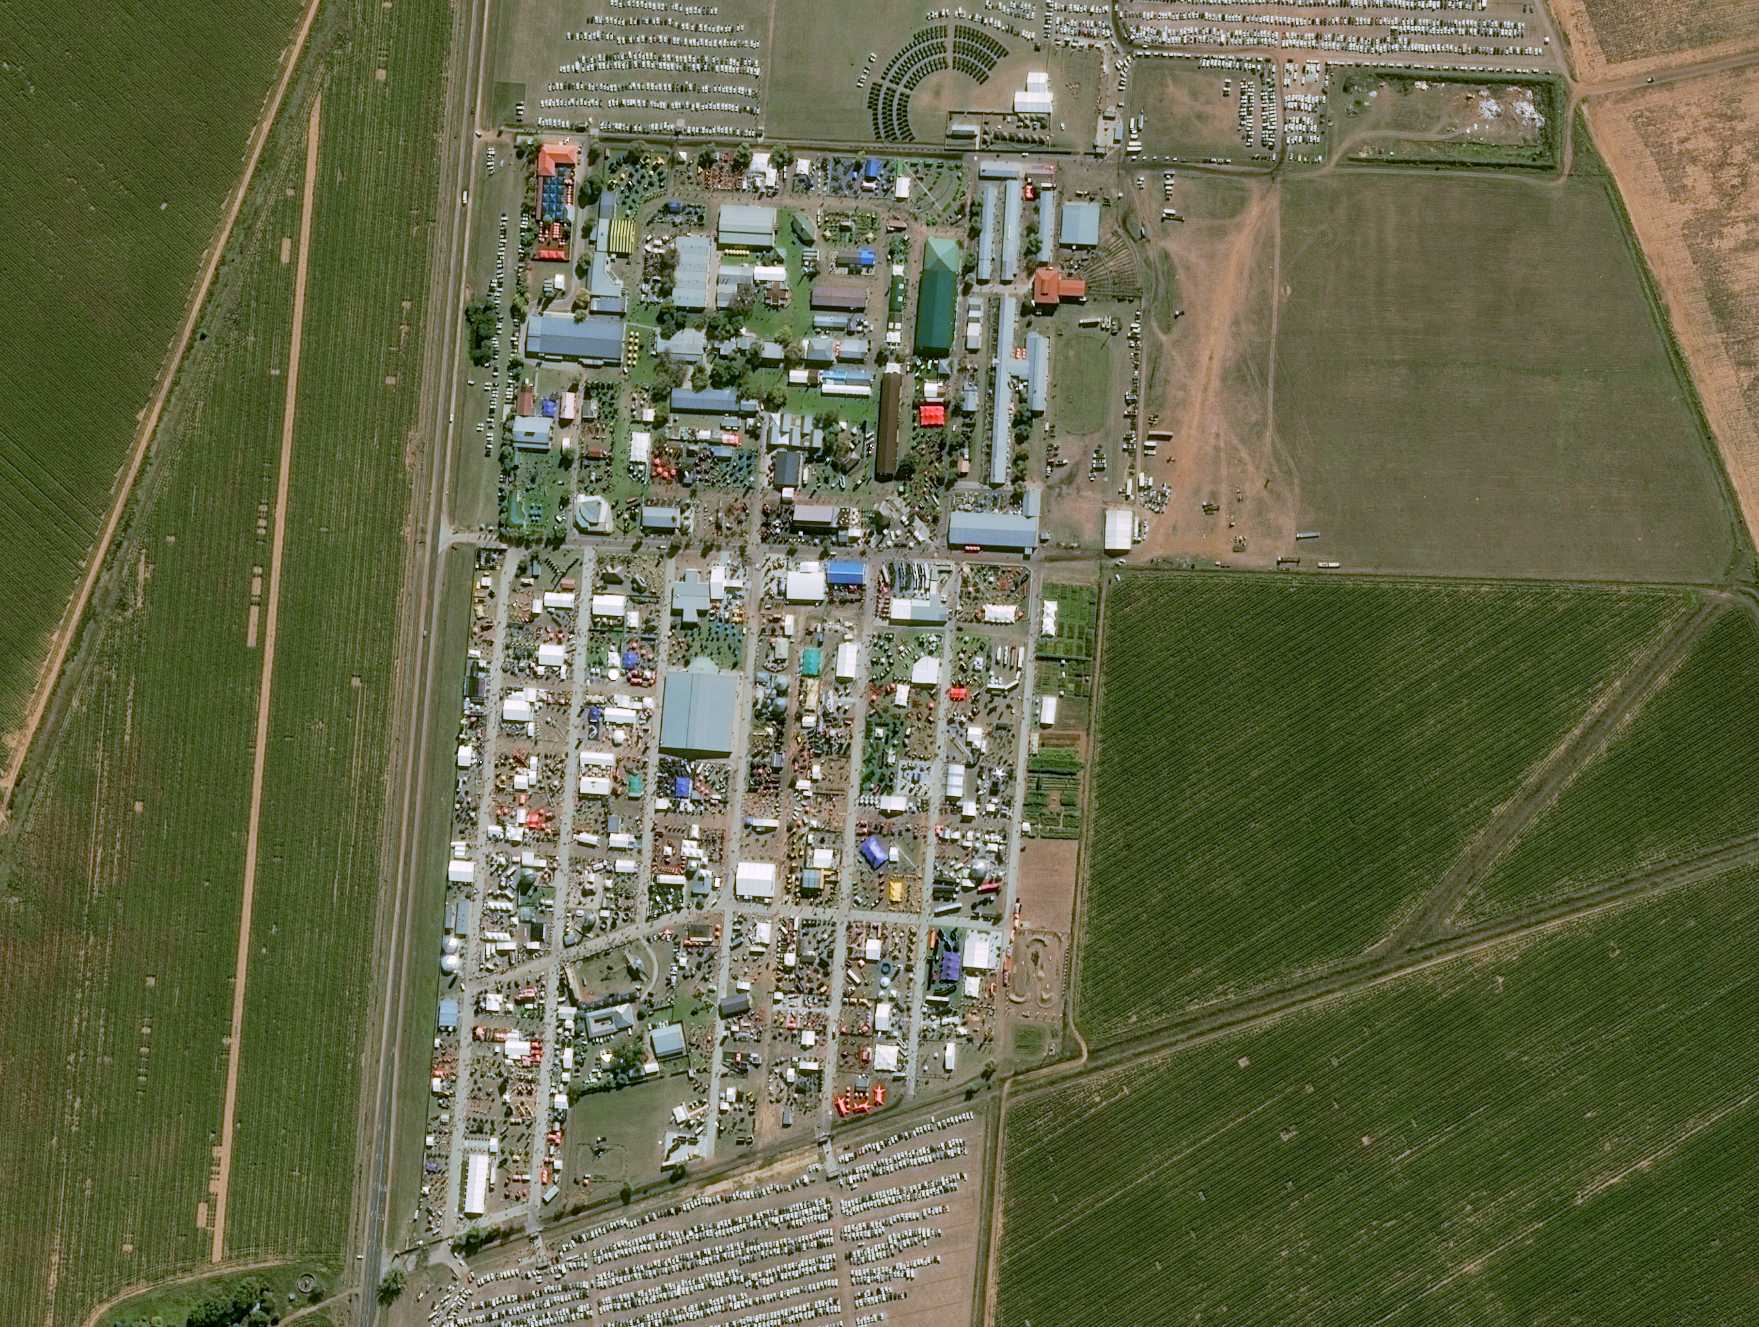 Fig. 1: An Airbus Pleiades satellite image of this year's NAMPO Harvest Day trade fair, Africa's largest agriculture trade expo. (Credit: Cnes 2019)